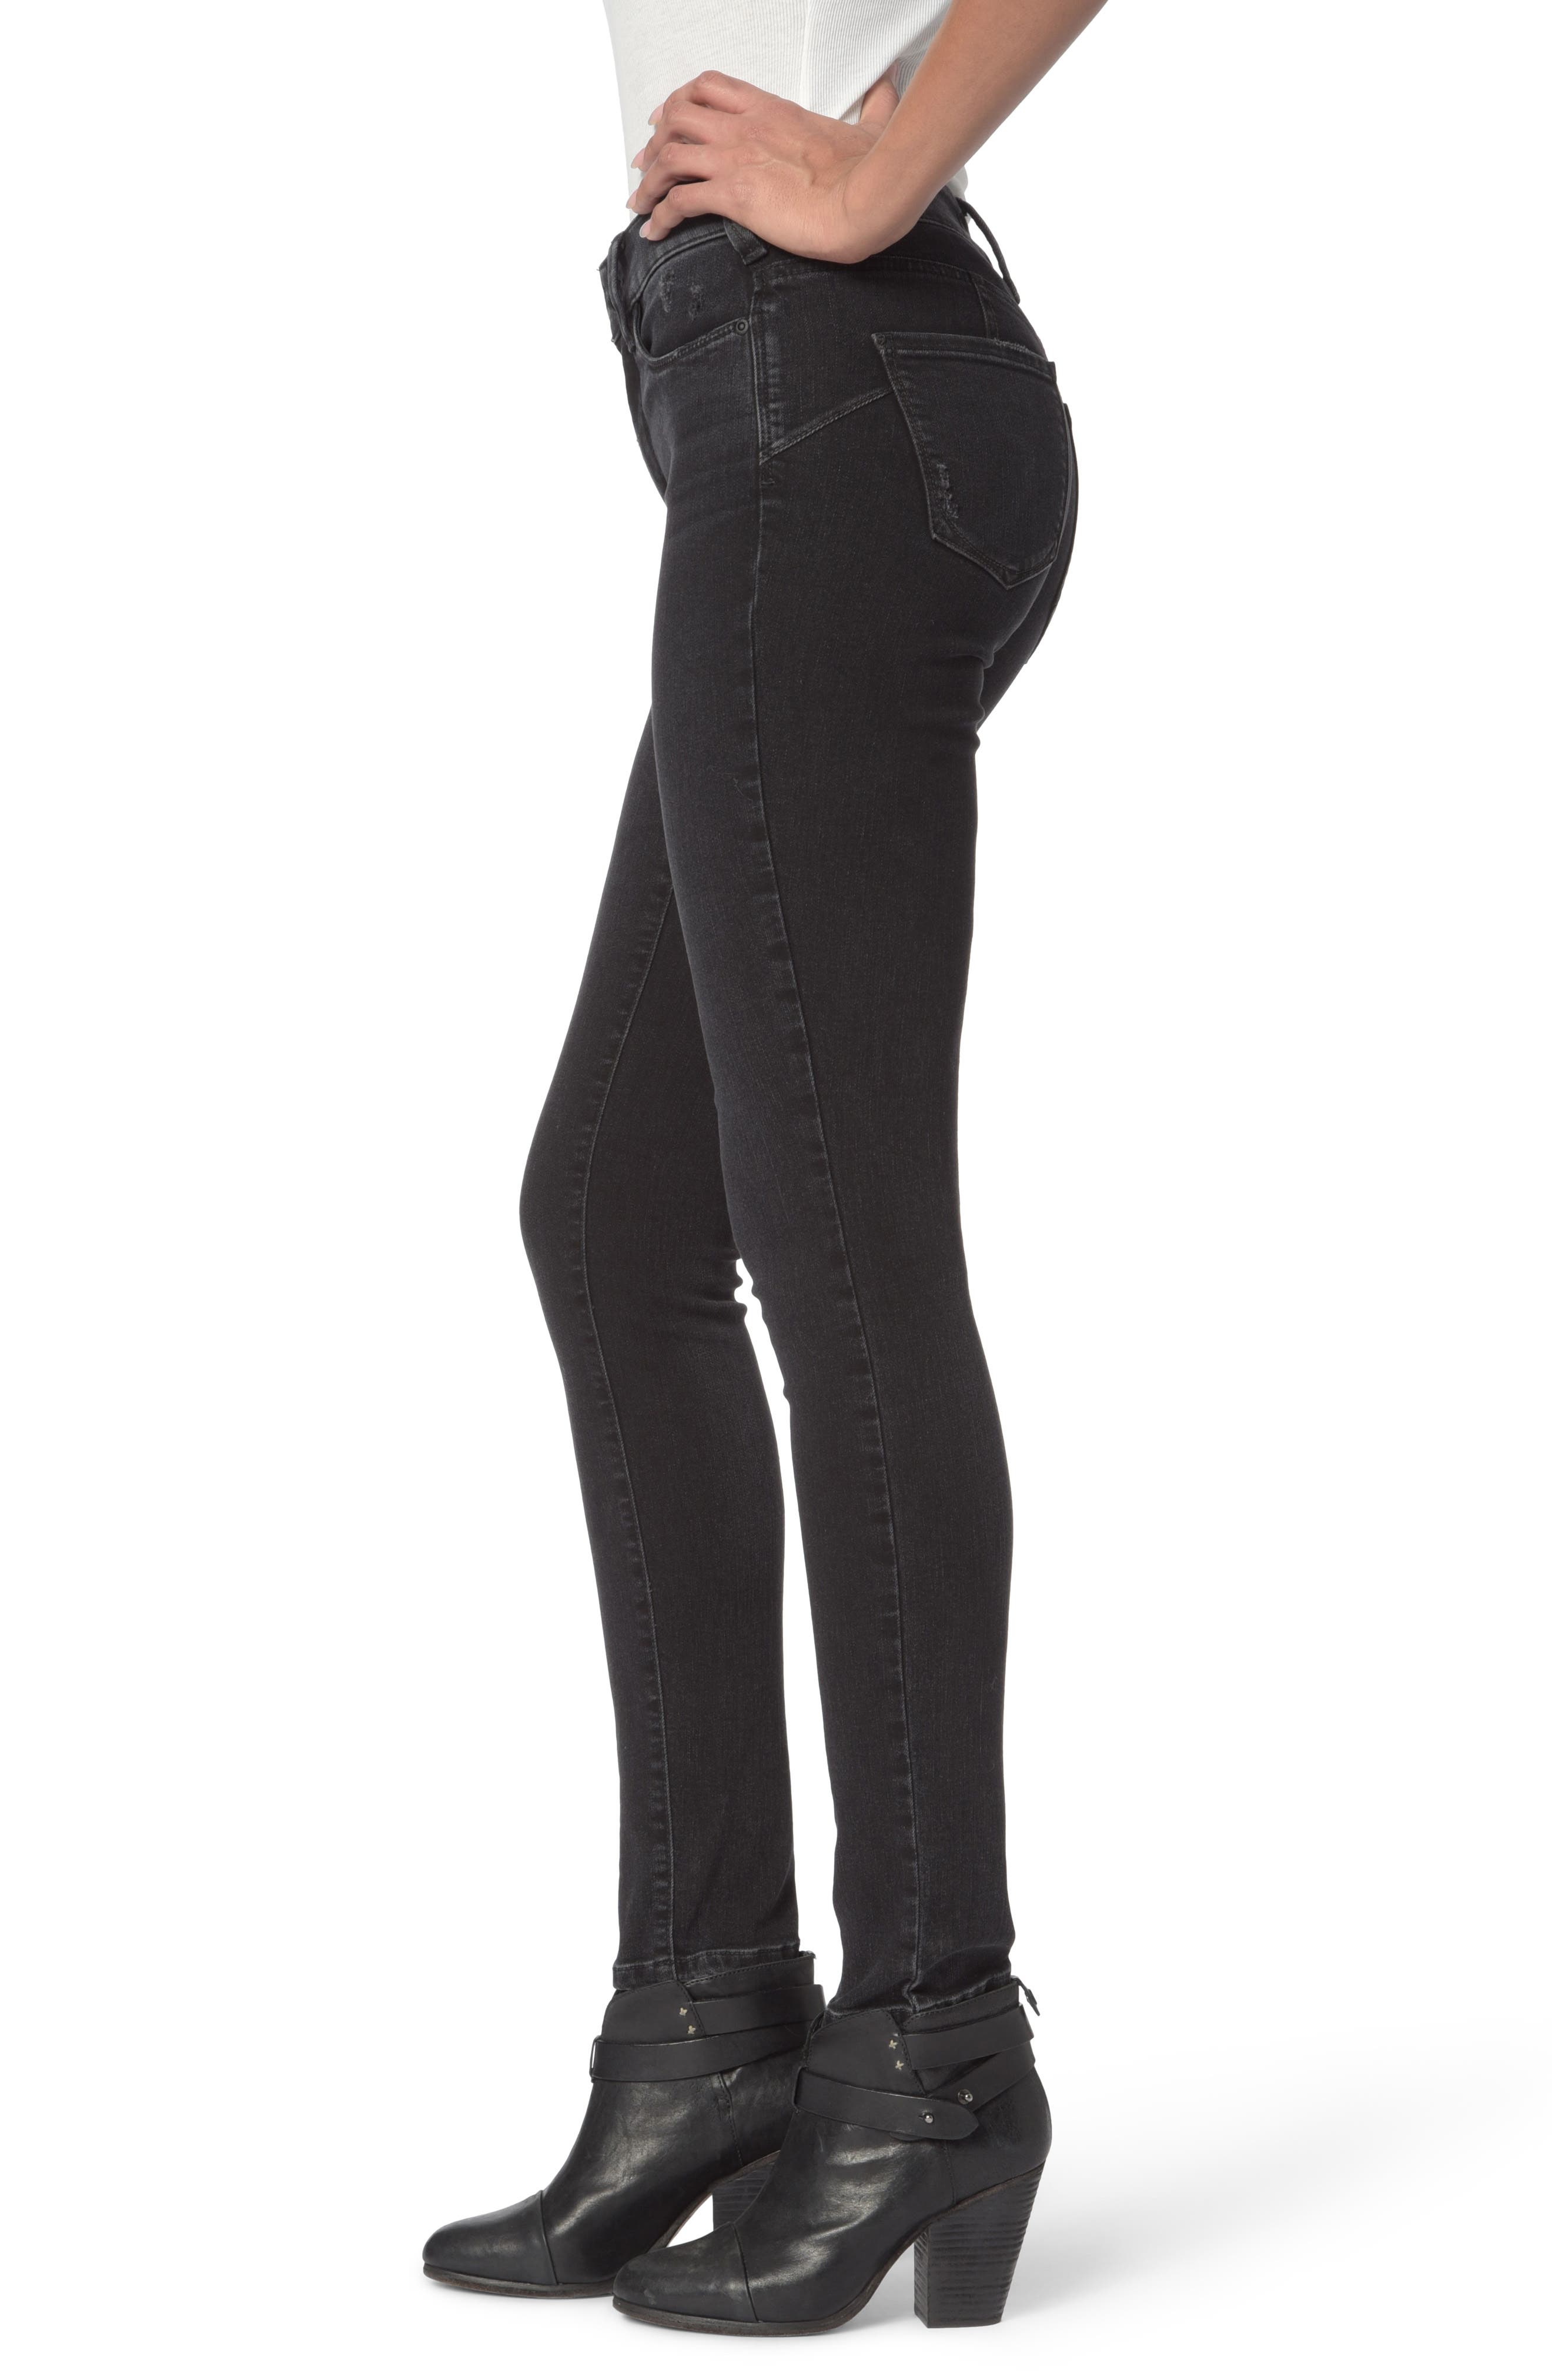 Alina Uplift Stretch Skinny Jeans,                             Alternate thumbnail 3, color,                             CAMPAIGN